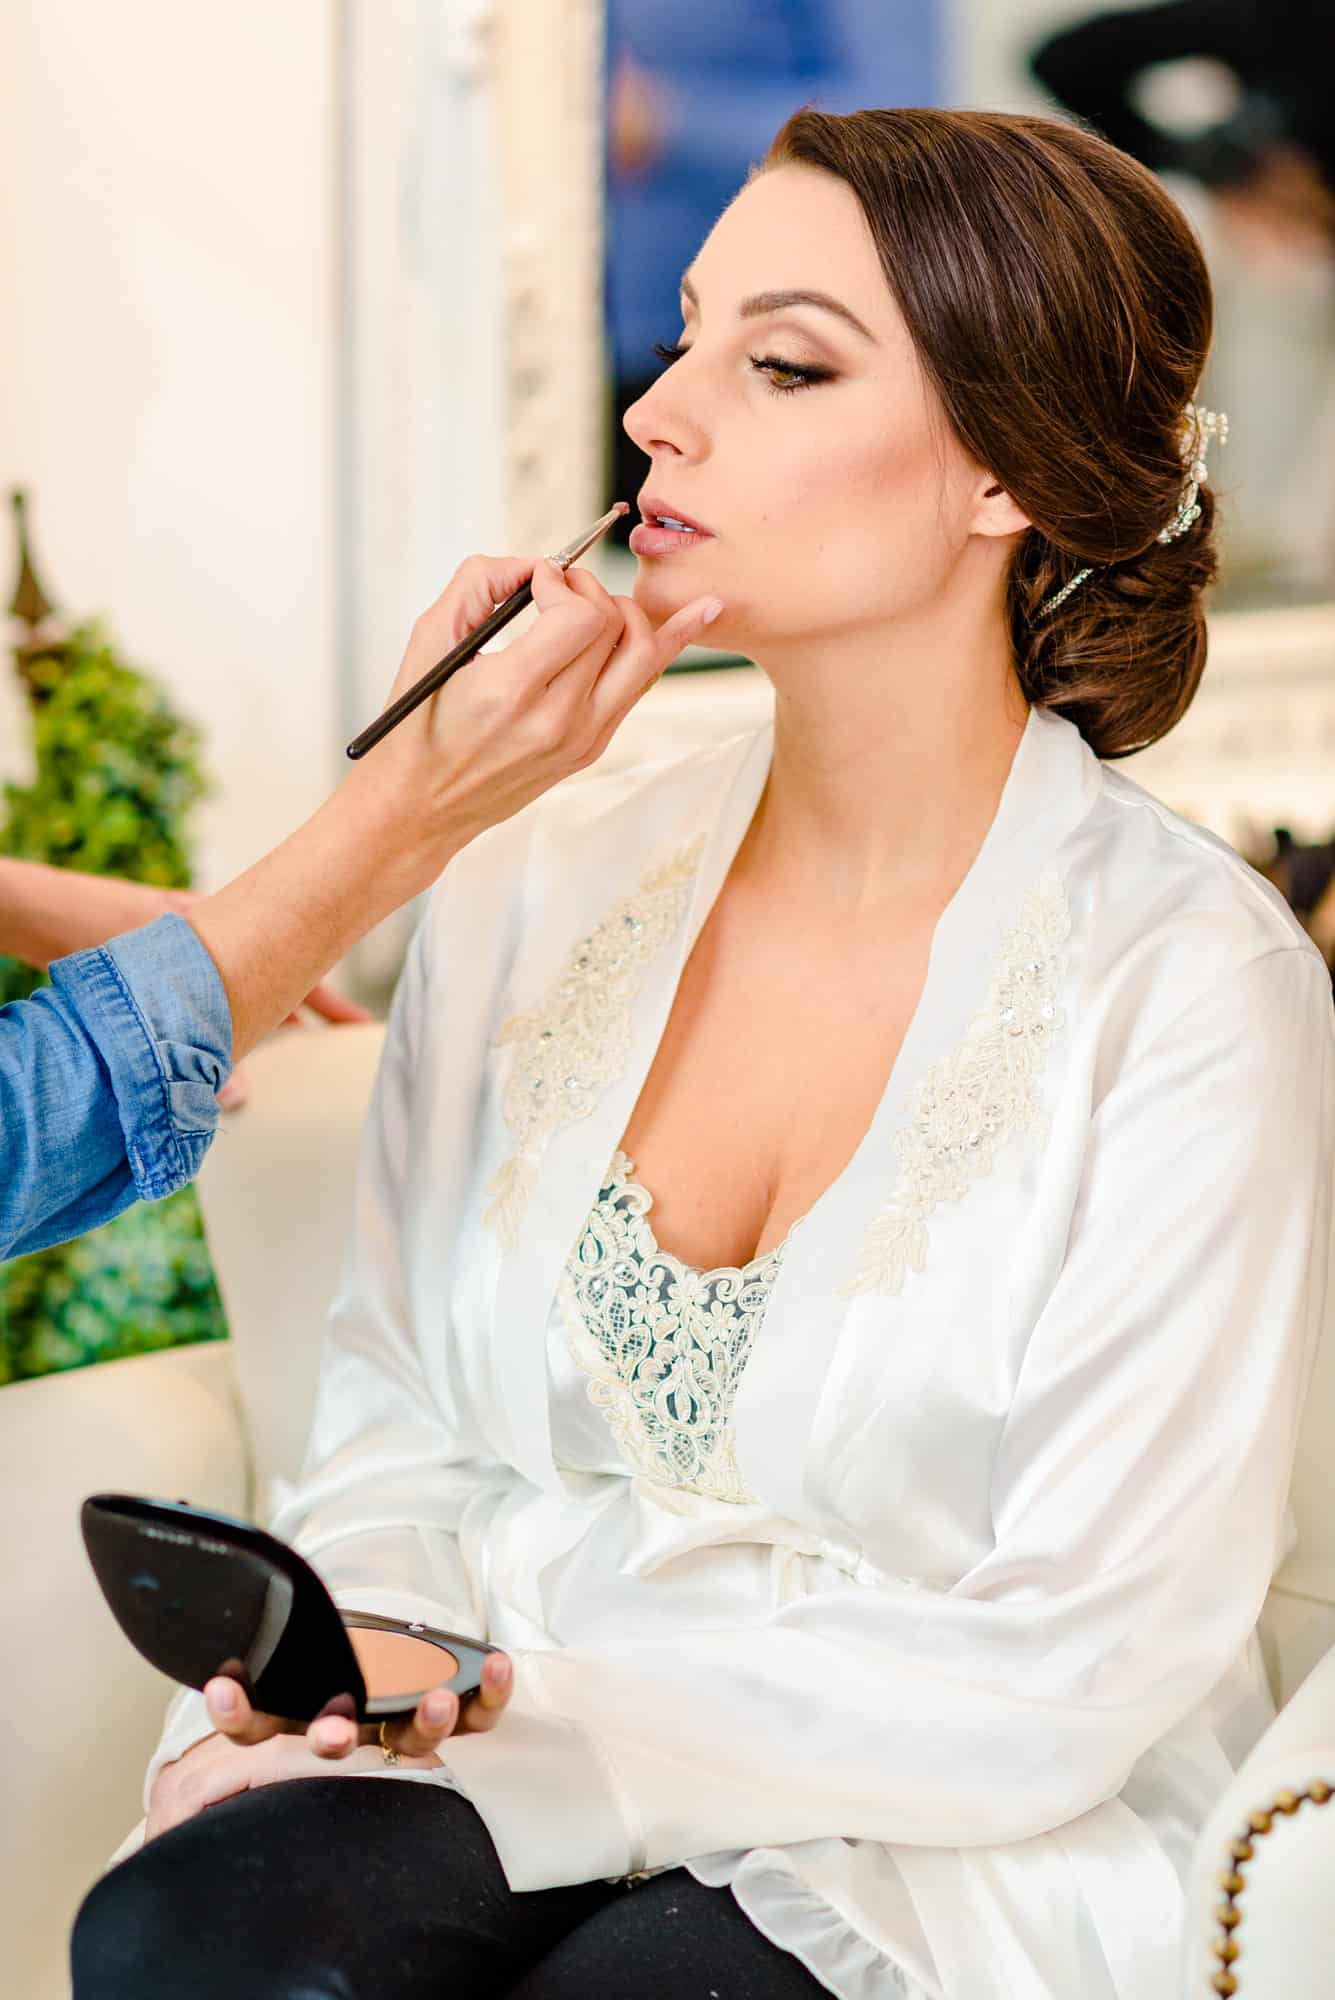 wedding makeup, artist applying lipgloss to bride while in robe